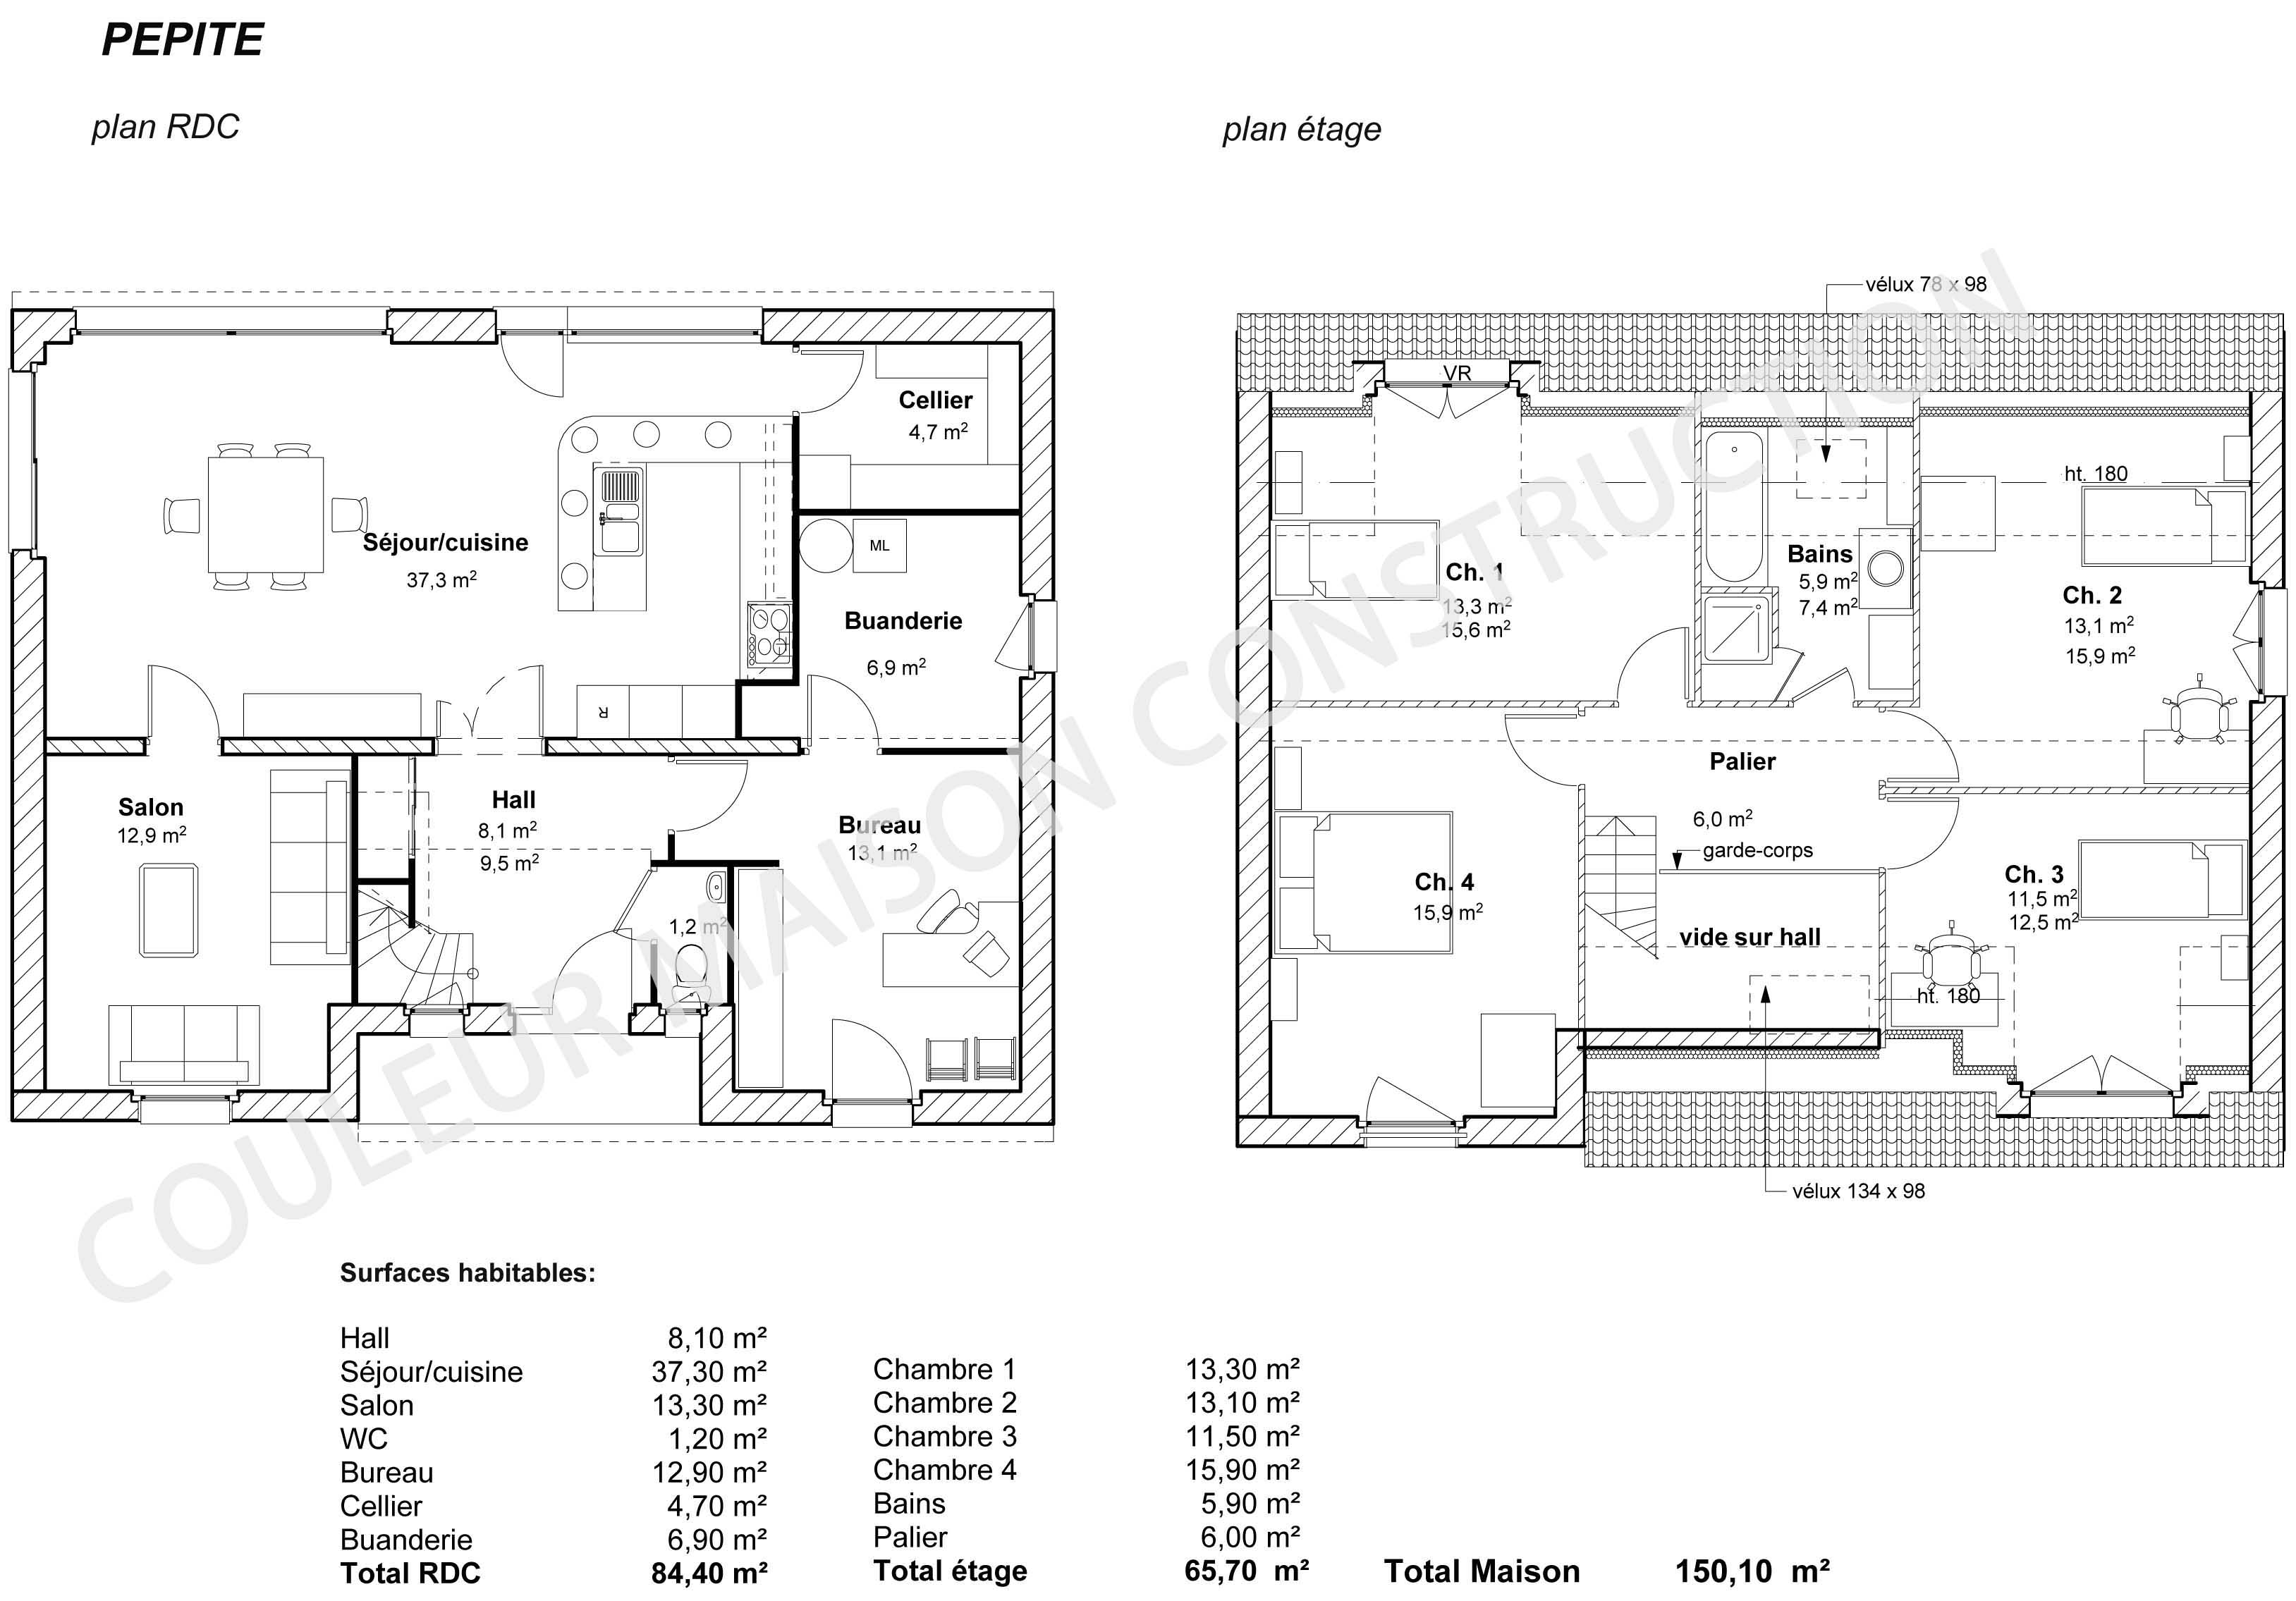 Plan maison gratuit pdf images for Plan de construction de maison gratuit